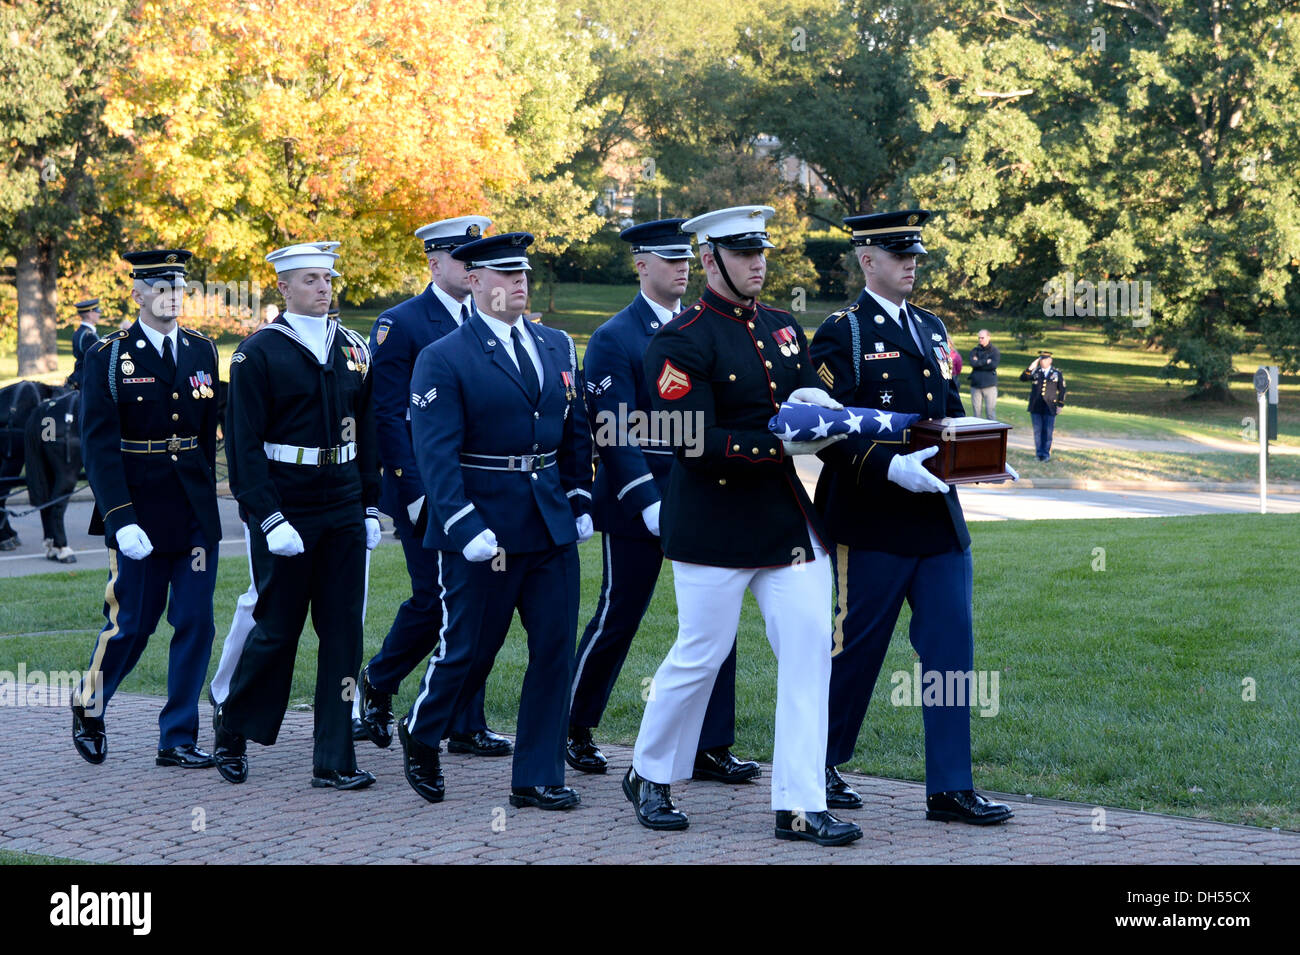 U.S. Service members of the Honor Guard carry the remains of Gen. David C. Jones, former Chairman of the Joint Chiefs of Staff, - Stock Image